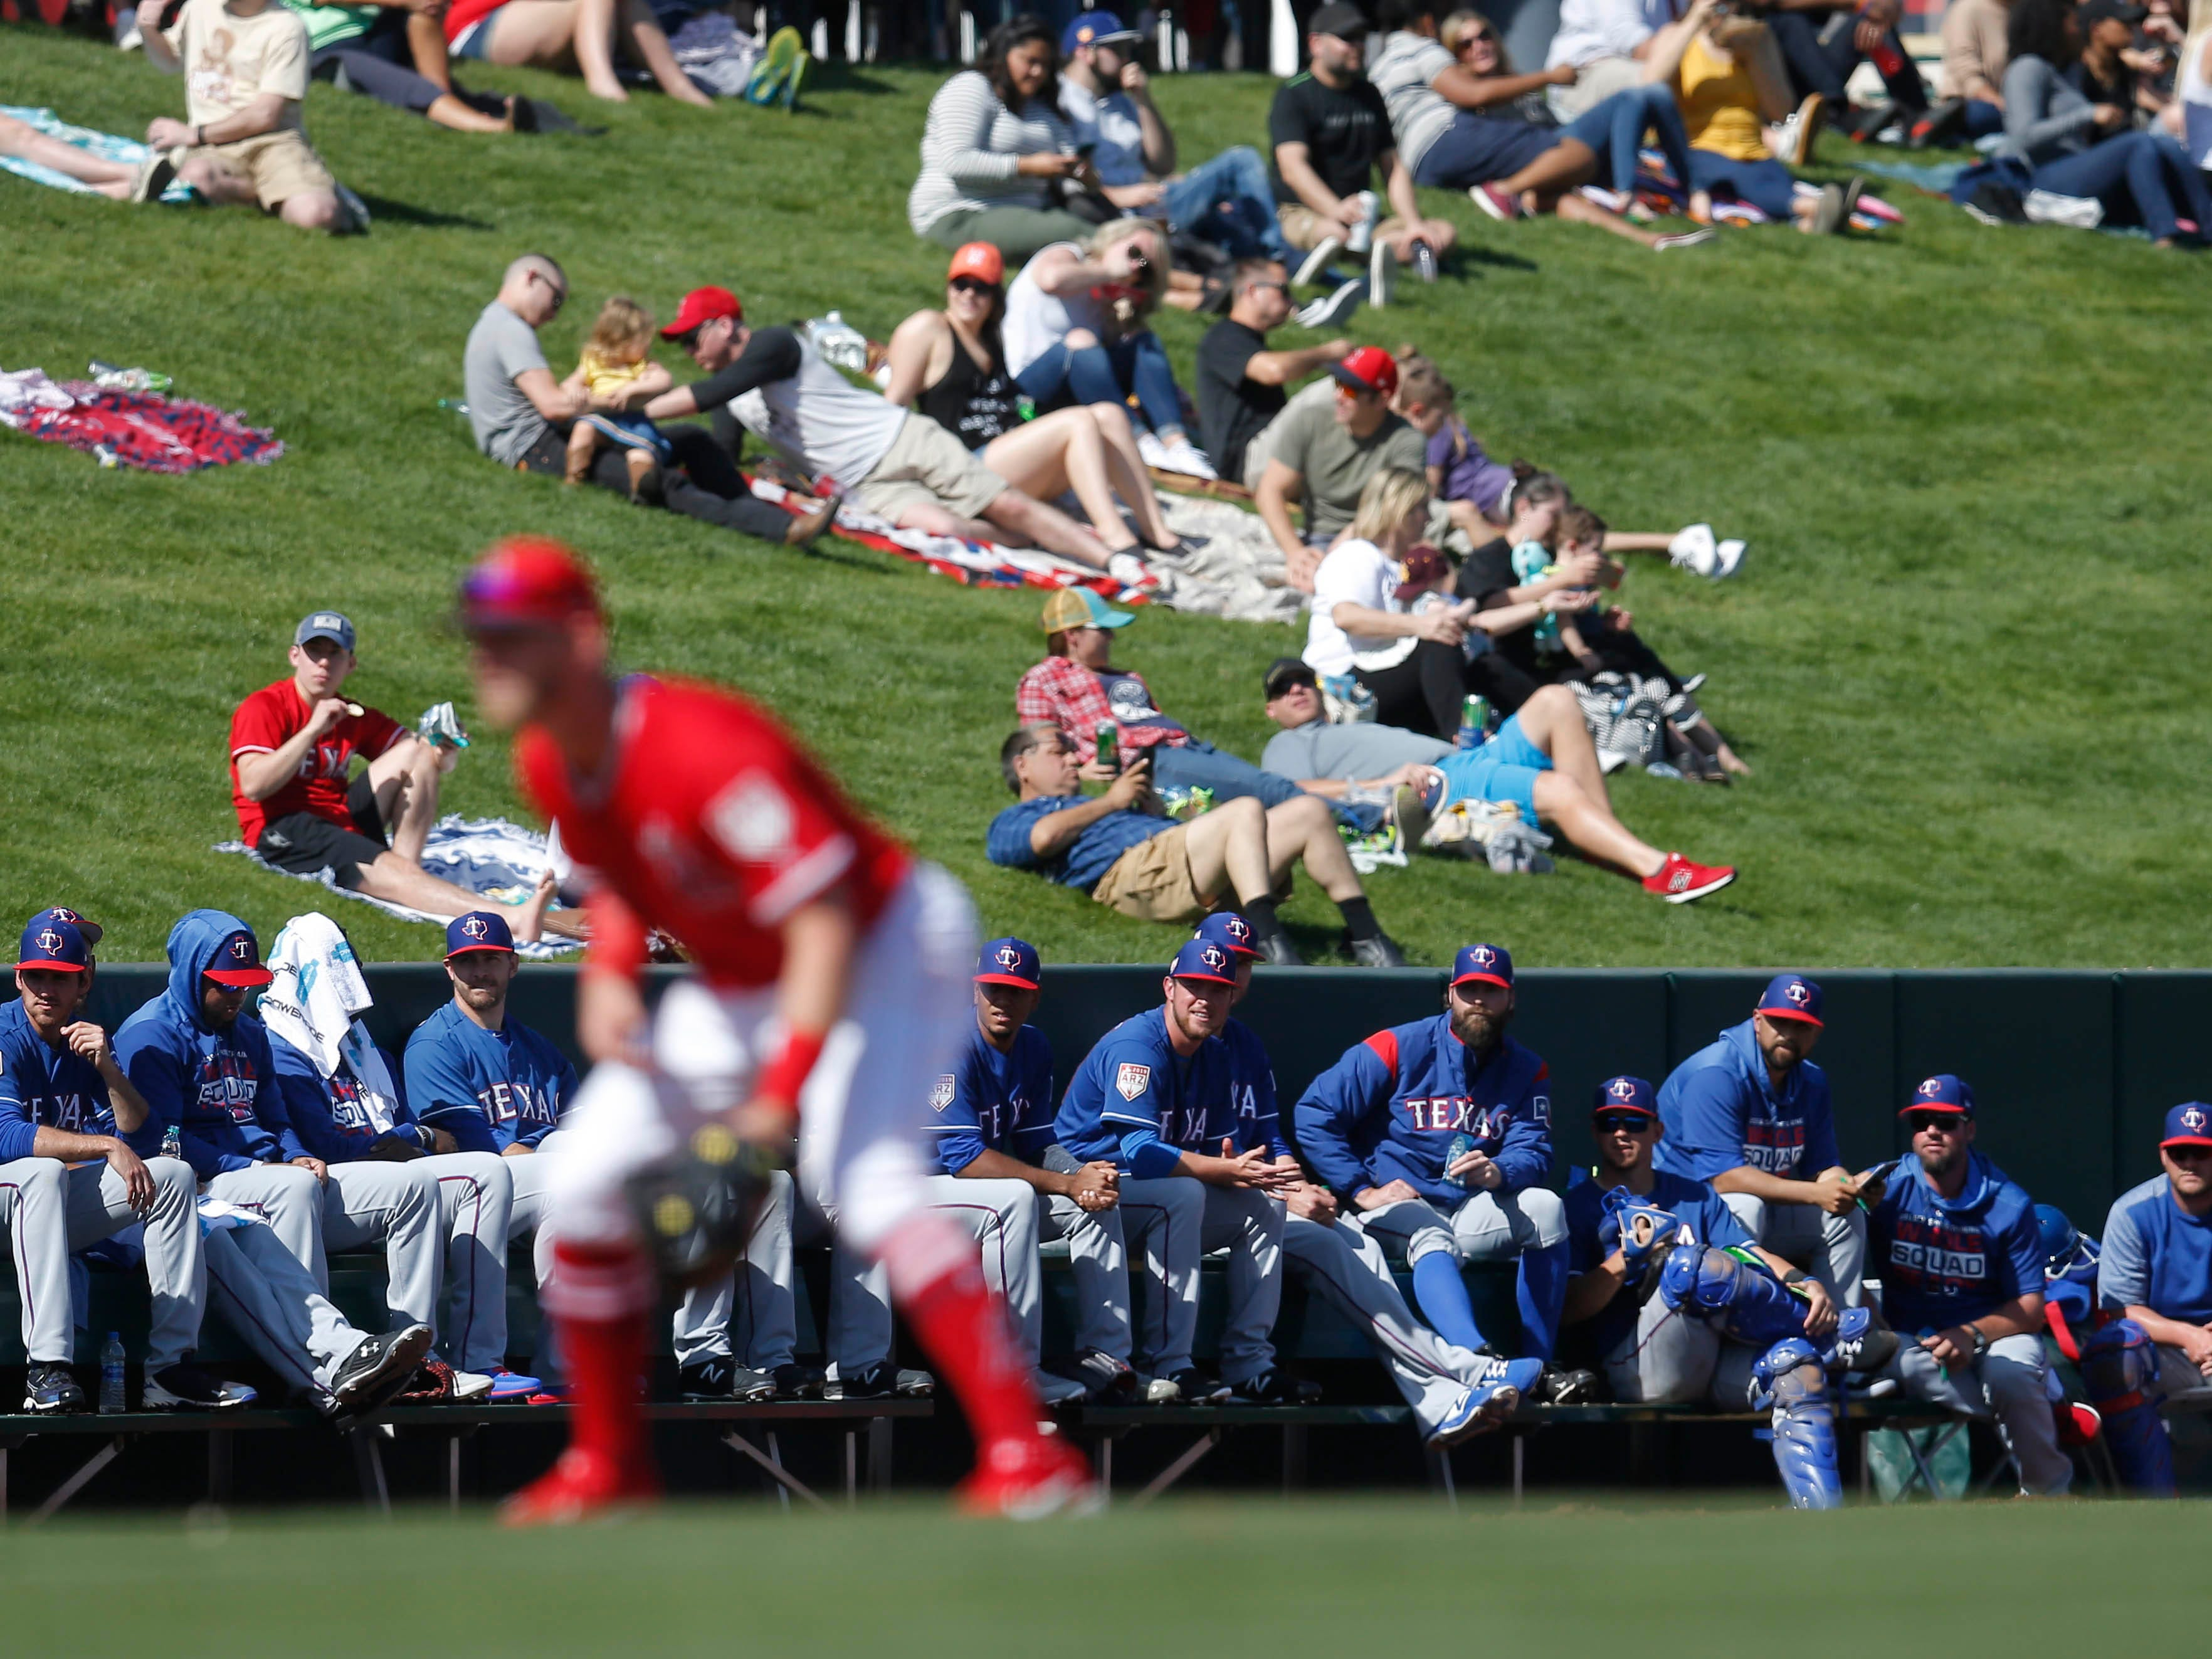 Feb. 28: The Texas Rangers bullpen watches a spring training game against the Los Angeles Angels at Tempe Diablo Stadium.